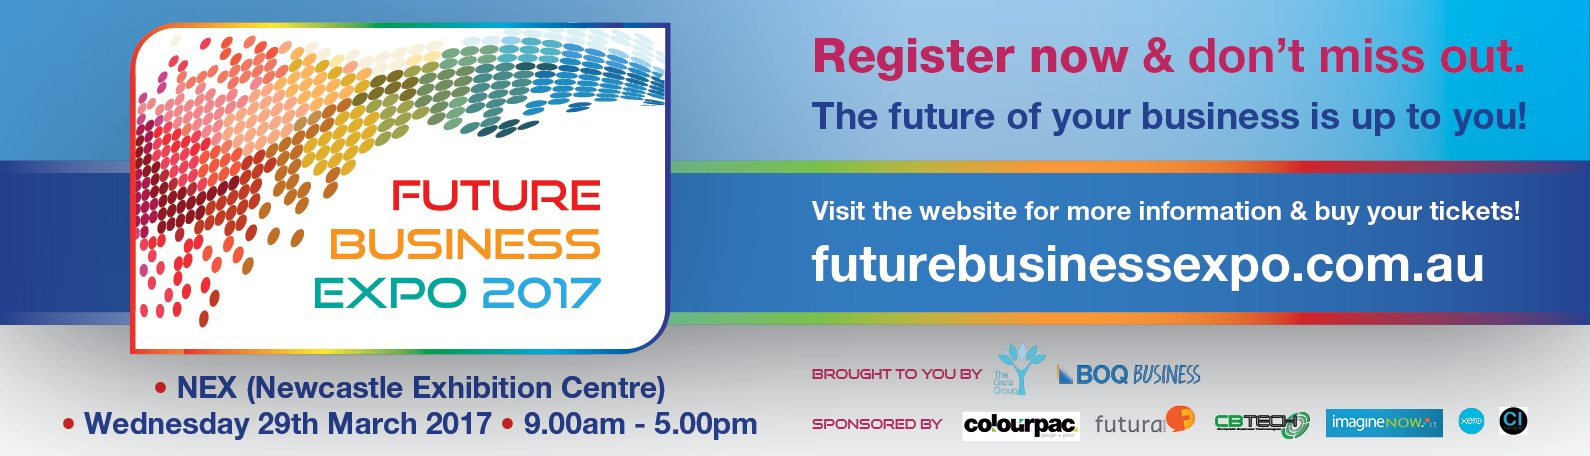 future-business-expo-email-footer